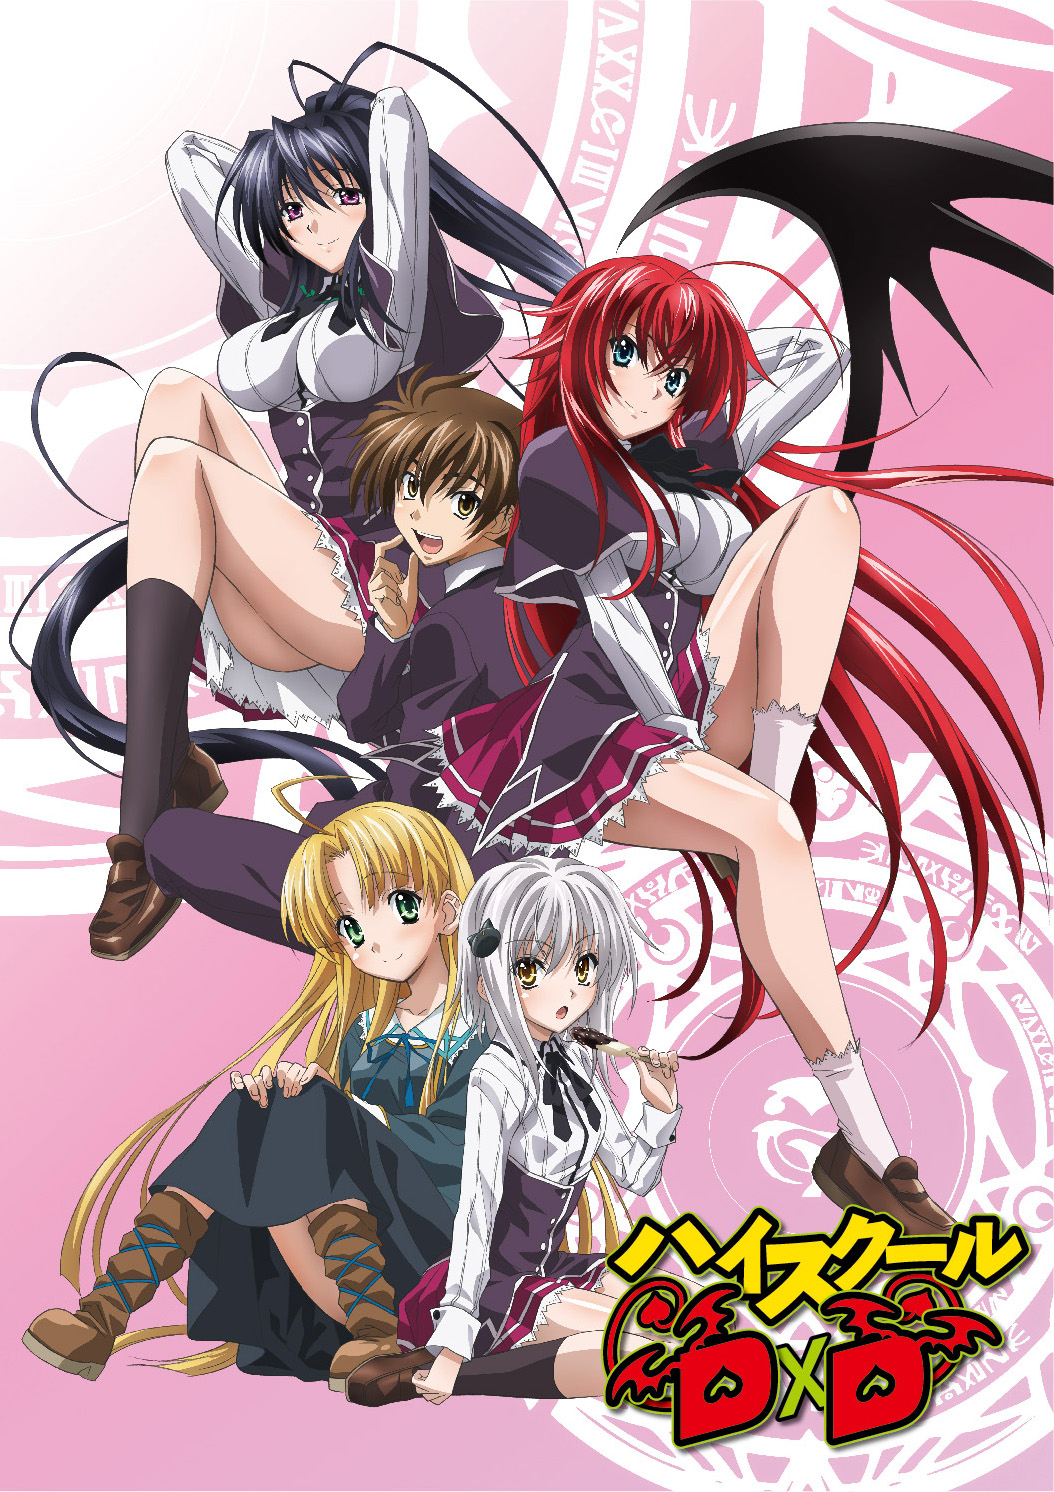 HentaiStream.com High School DxD